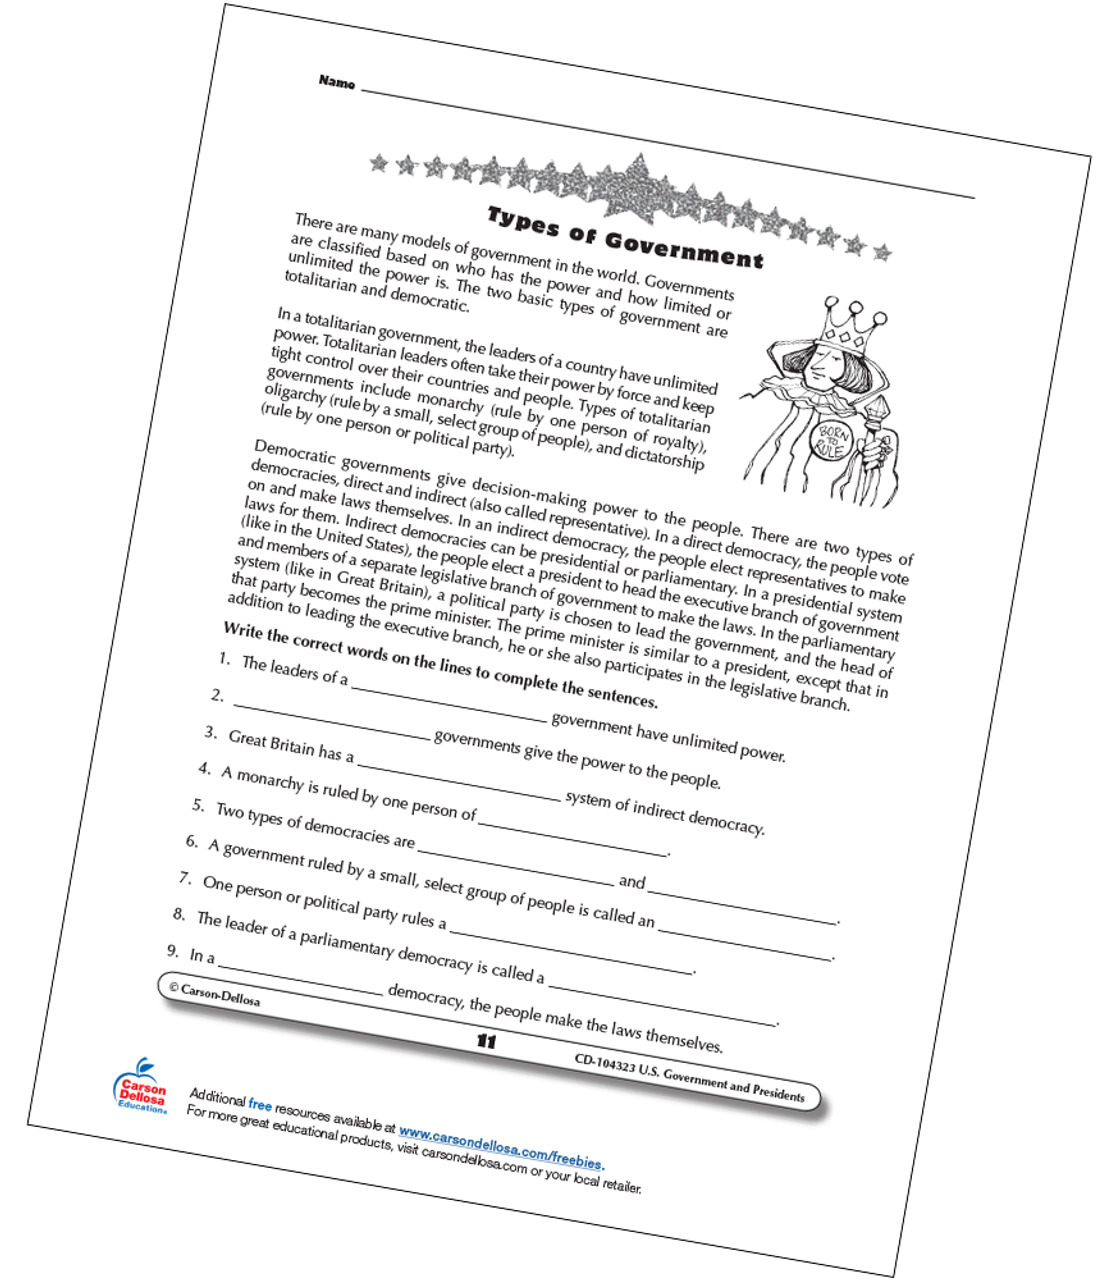 Types of World Governments for Grades 3-5 Free Printable ...